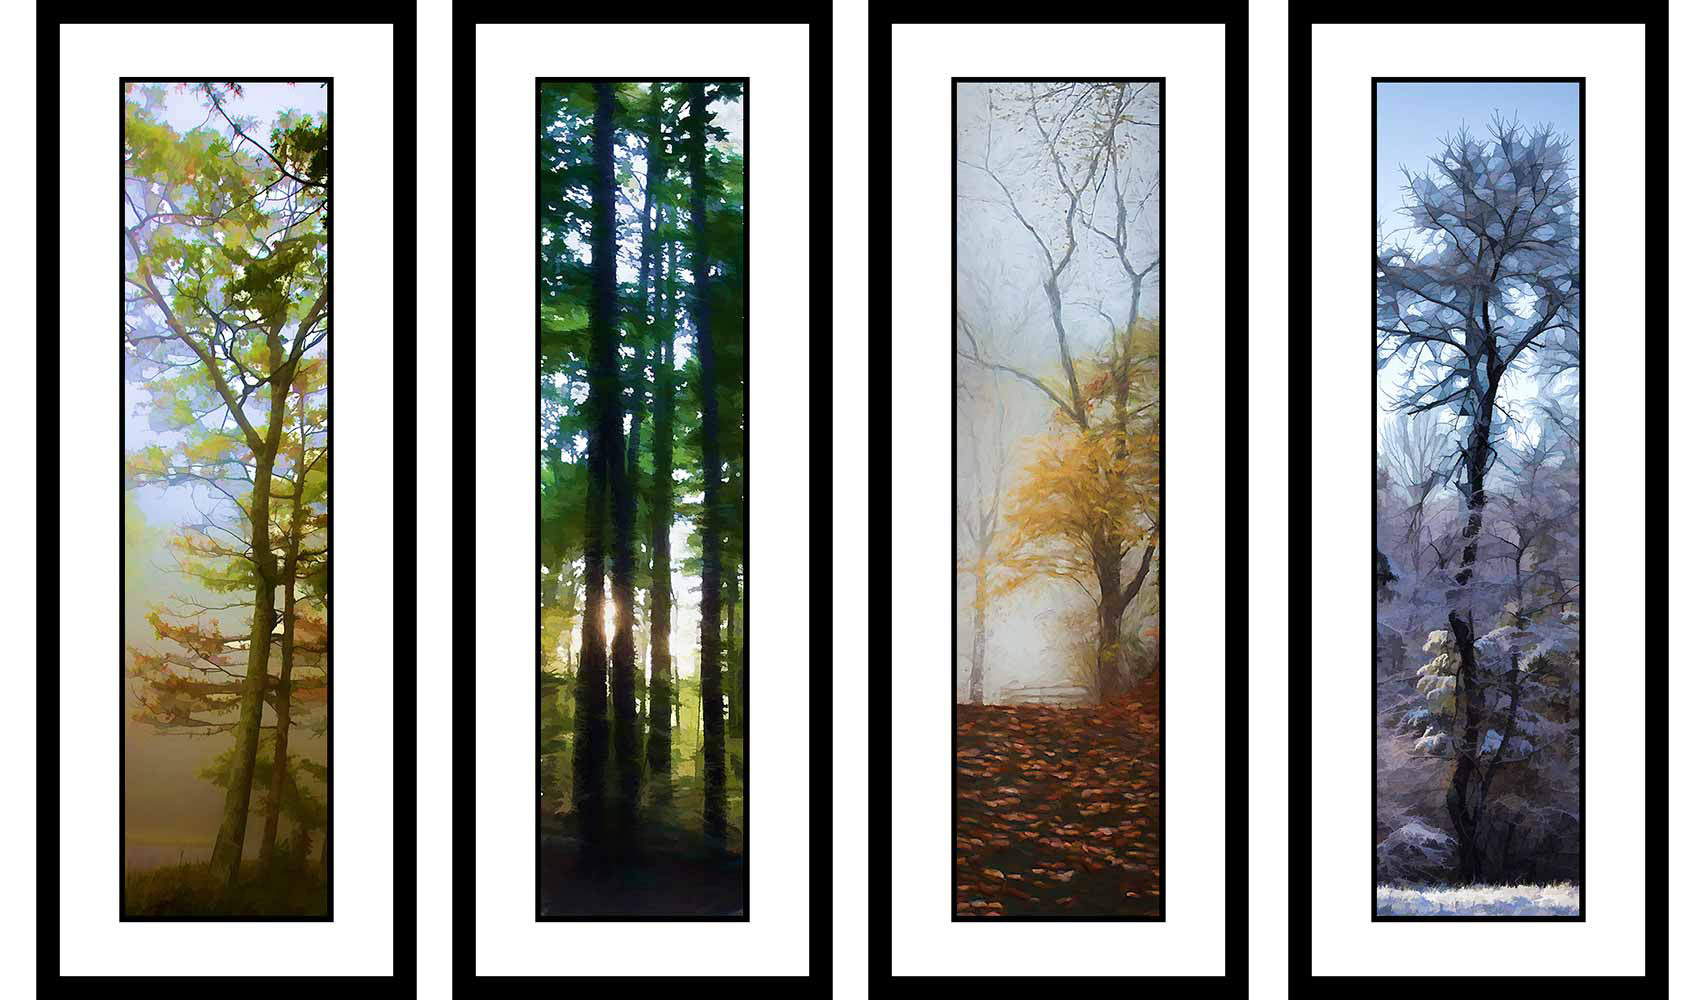 Muted Seasons grouping by Alison Thomas of Serenity Scenes Photography and Digital Art.